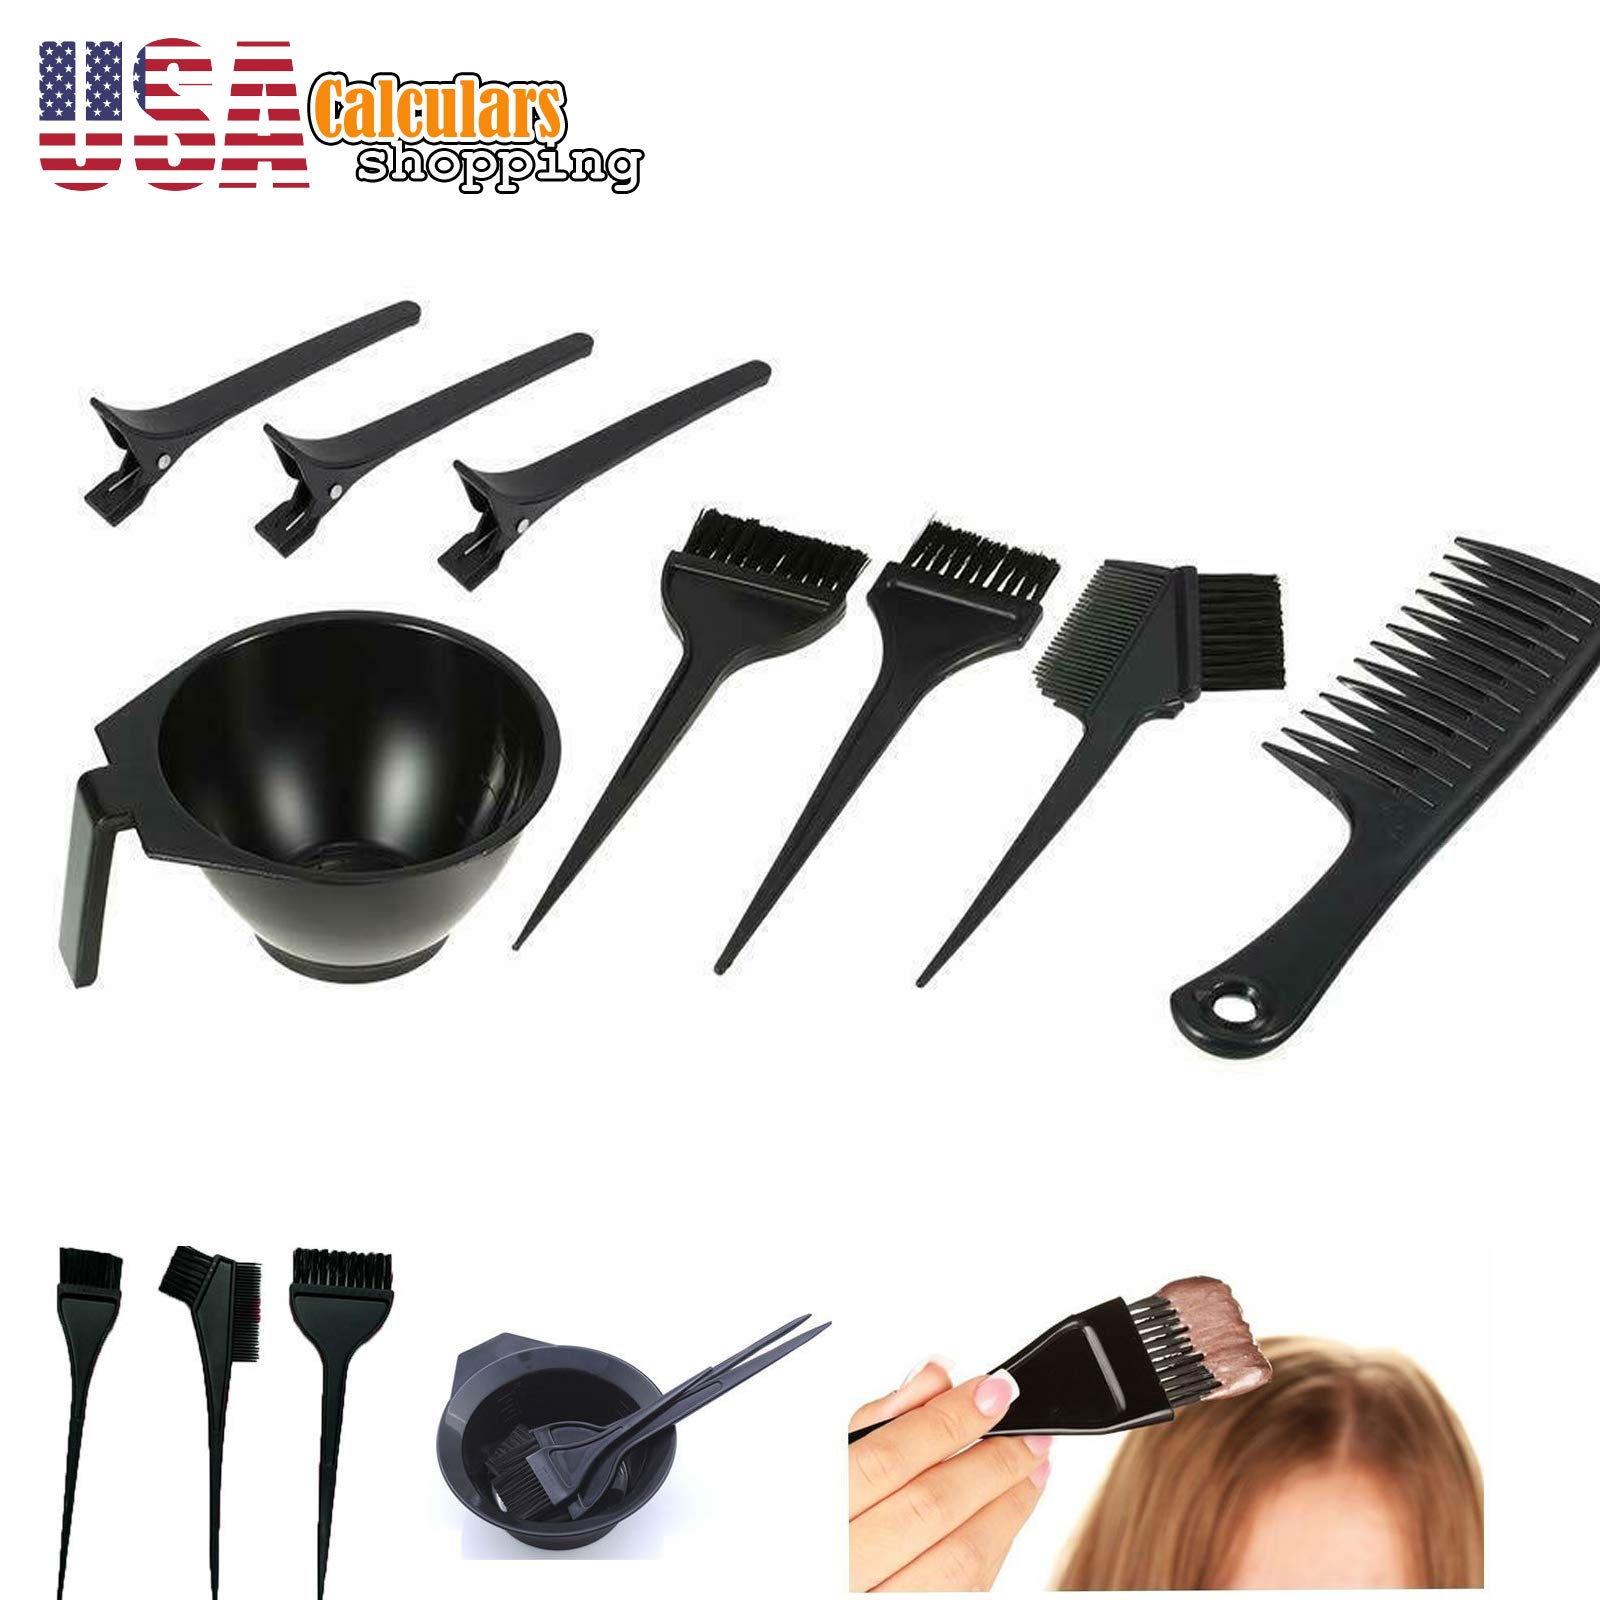 US Seller Hair Dye Color Bowl Combo Coloring Brush Kit Tint Tool Bleach 8 pc Set by Calculars